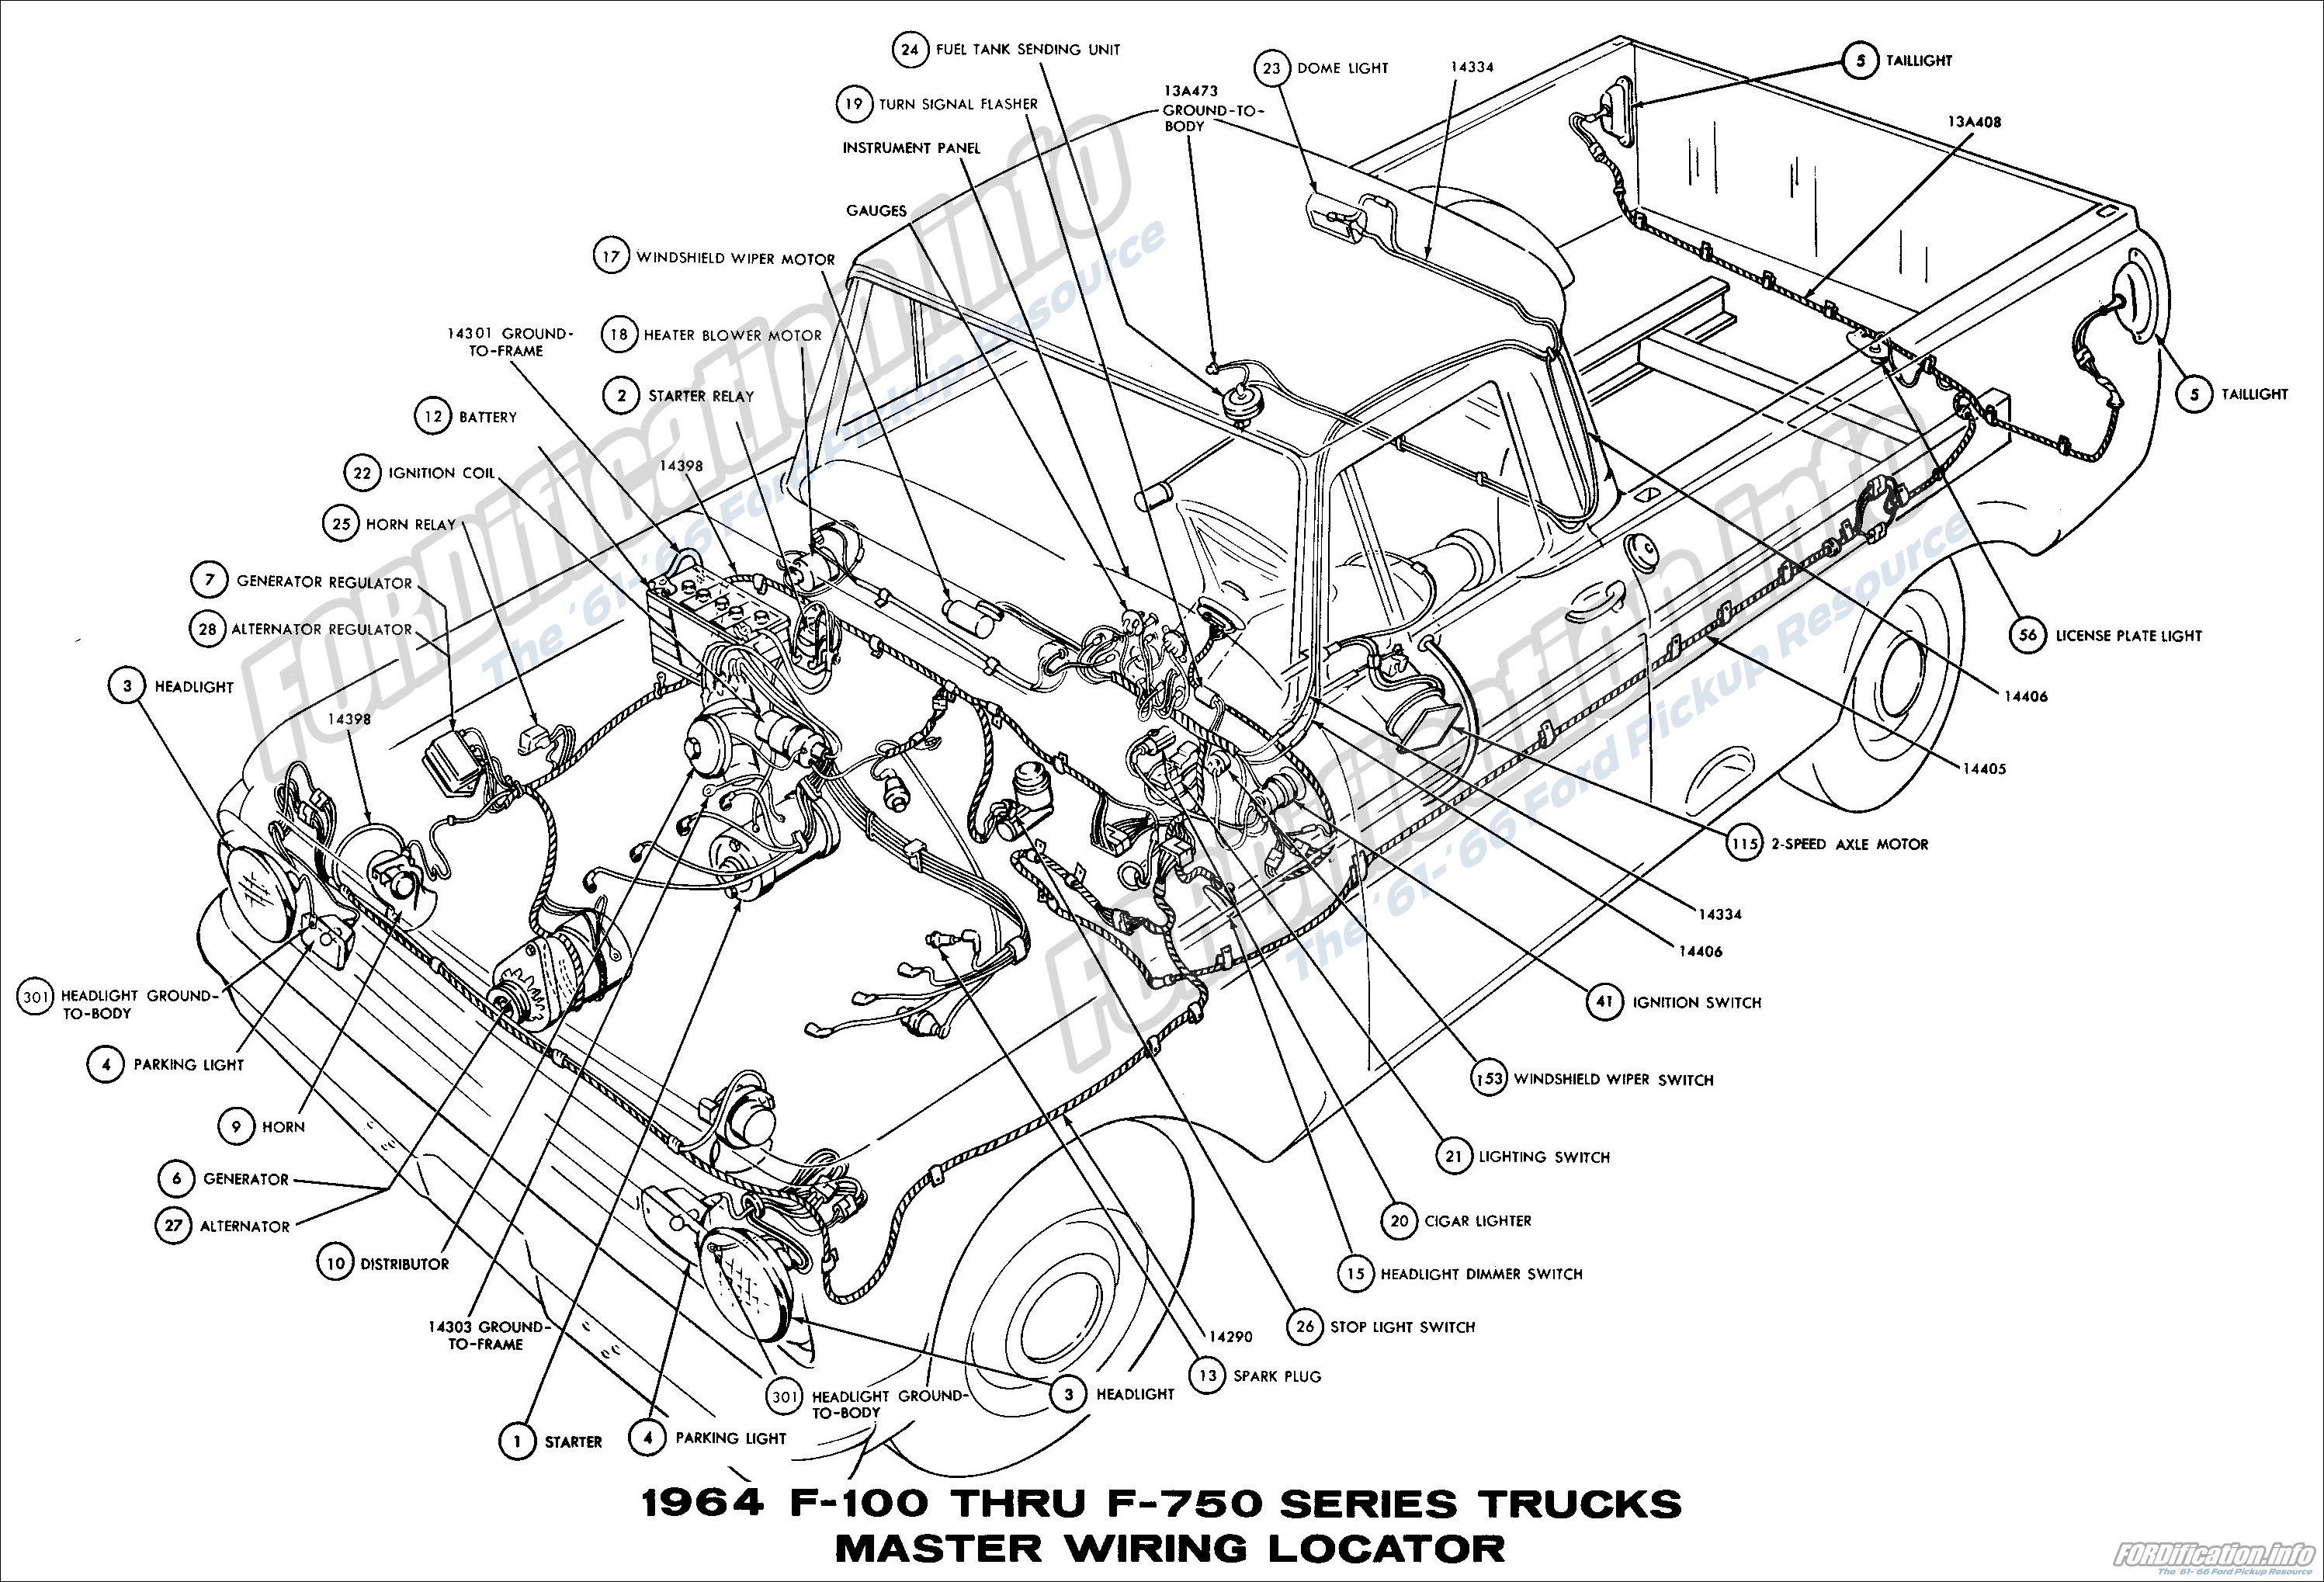 1964 ford truck wiring diagrams fordification info the 61 66 rh fordification info Ford F-150 Trailer Wiring Diagram 1962 Ford Truck Wiring Diagram